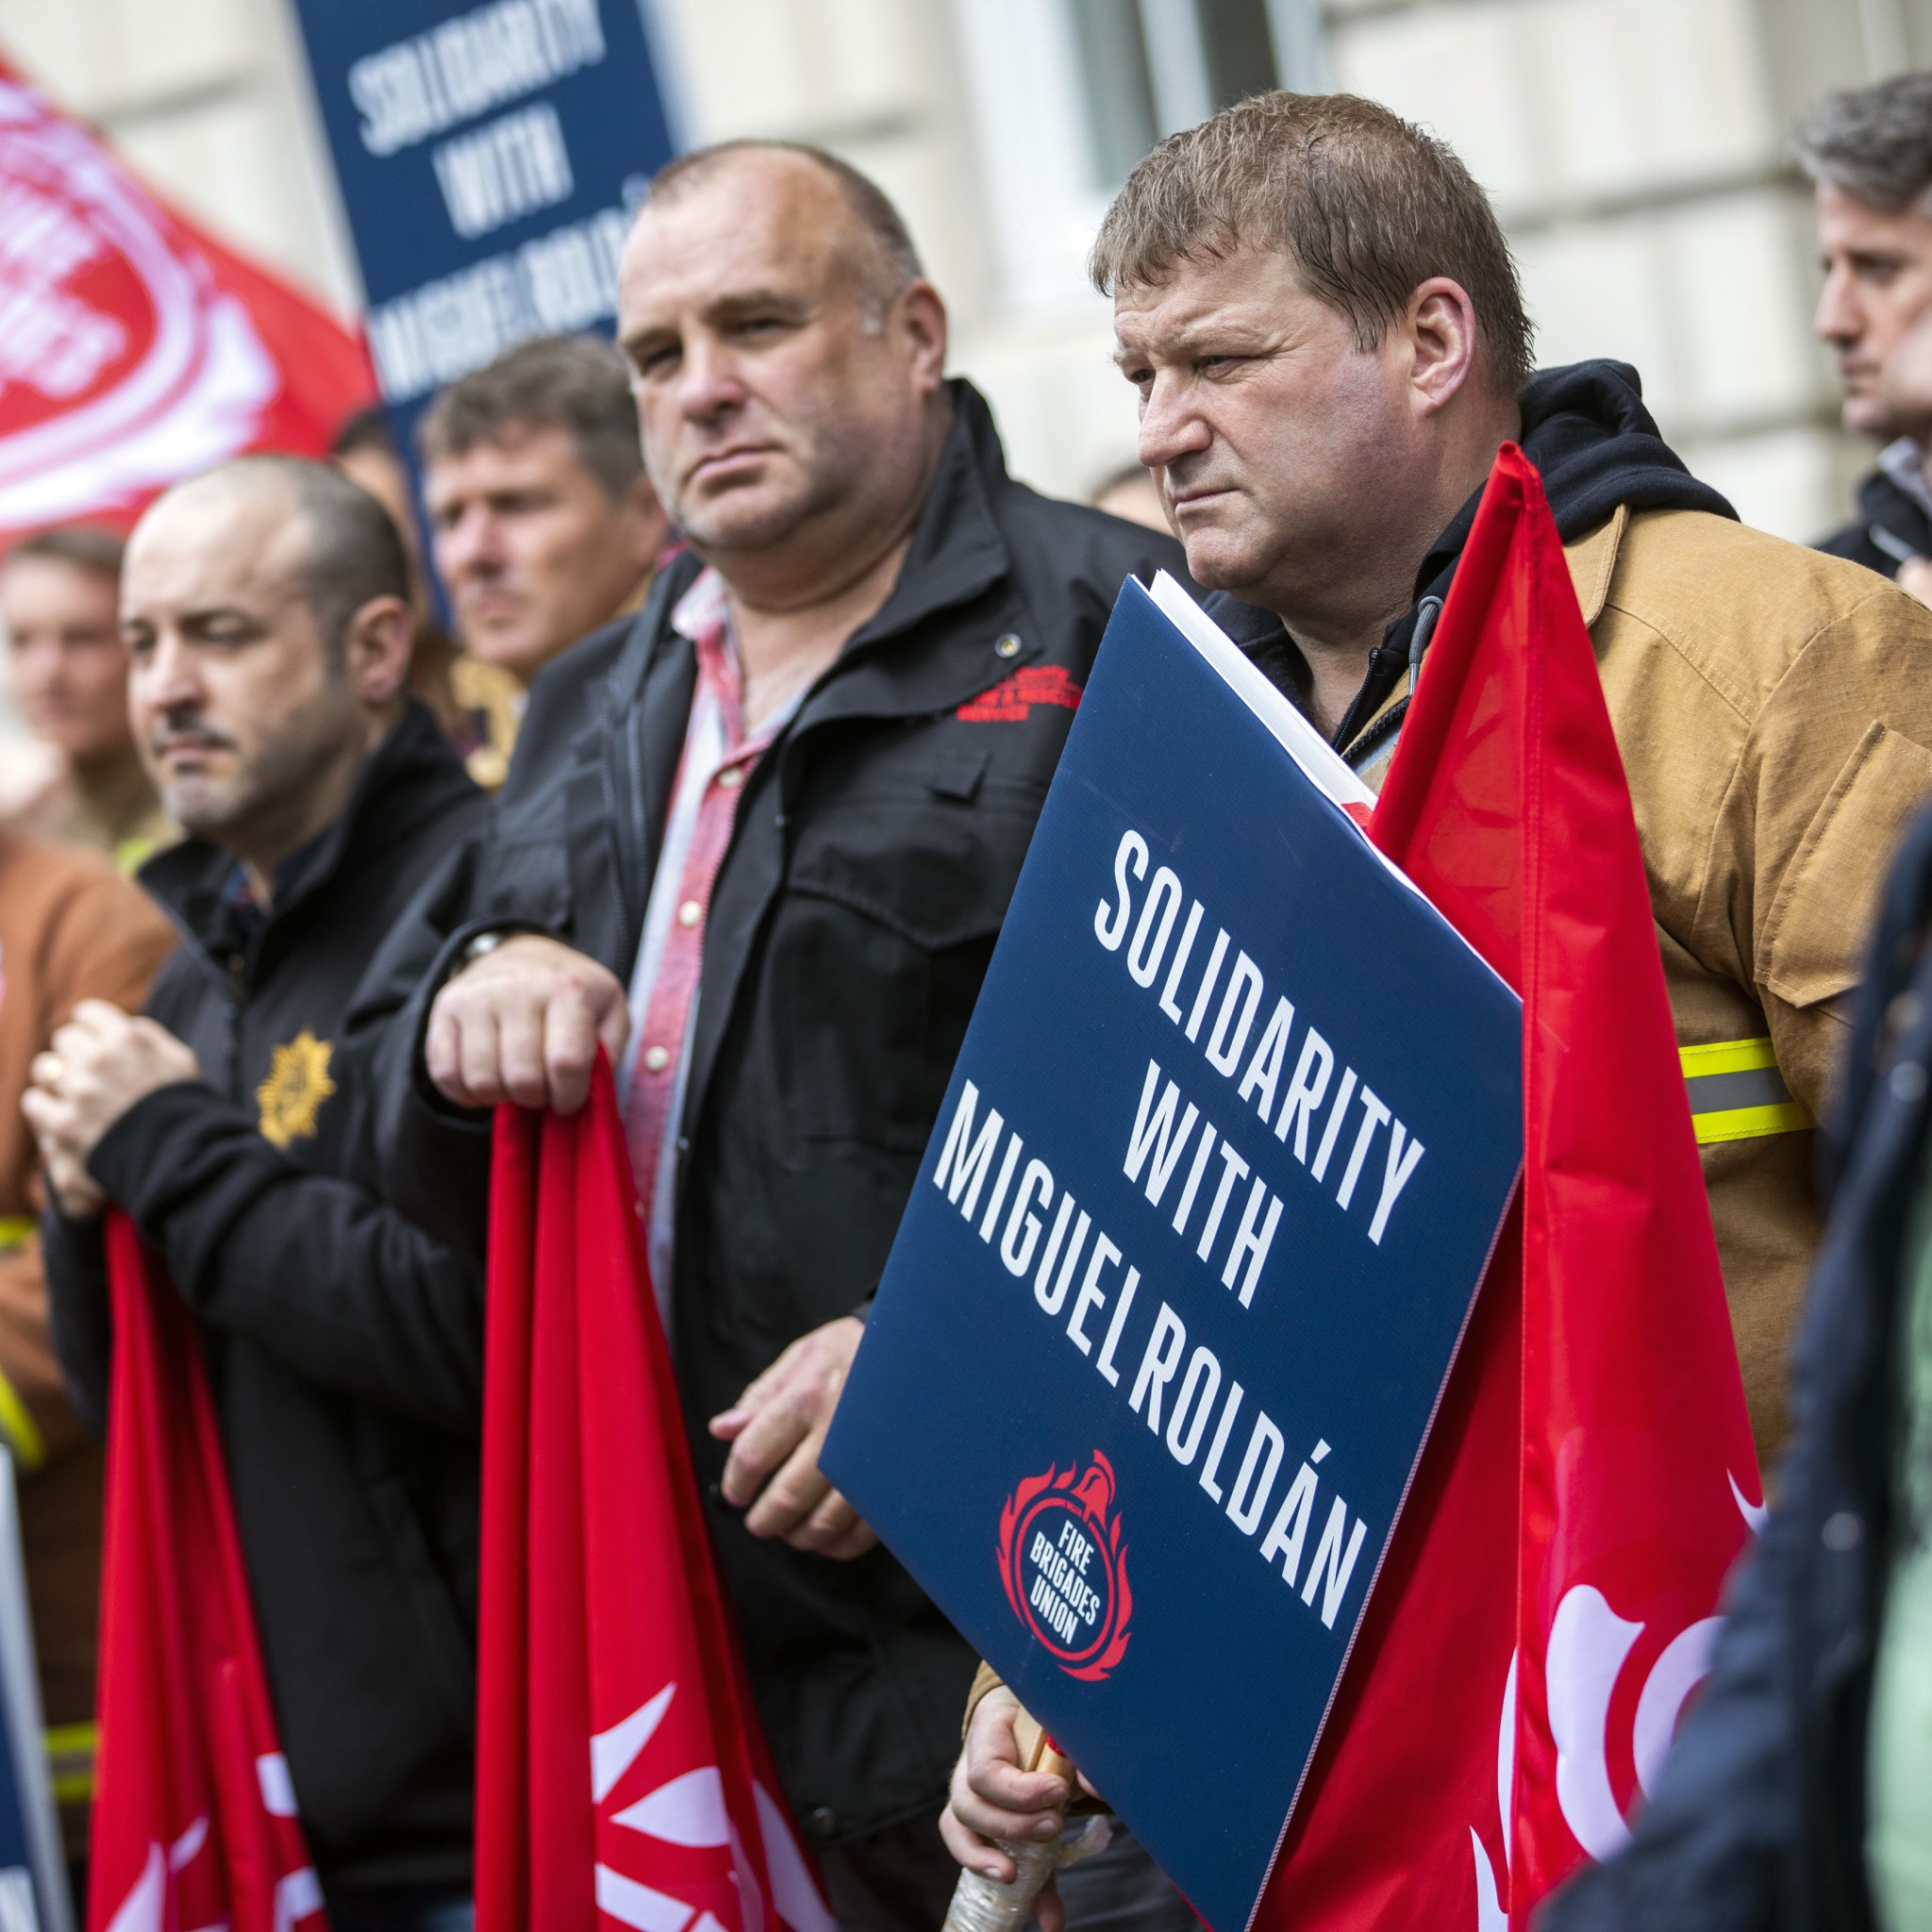 Firefighters outside the Italian embassy in London, England last Thursday demanding the immediate release of Miguel Roldan who faces 20 years in jail for helping to save the lives of refugees. Photo credit: FBU